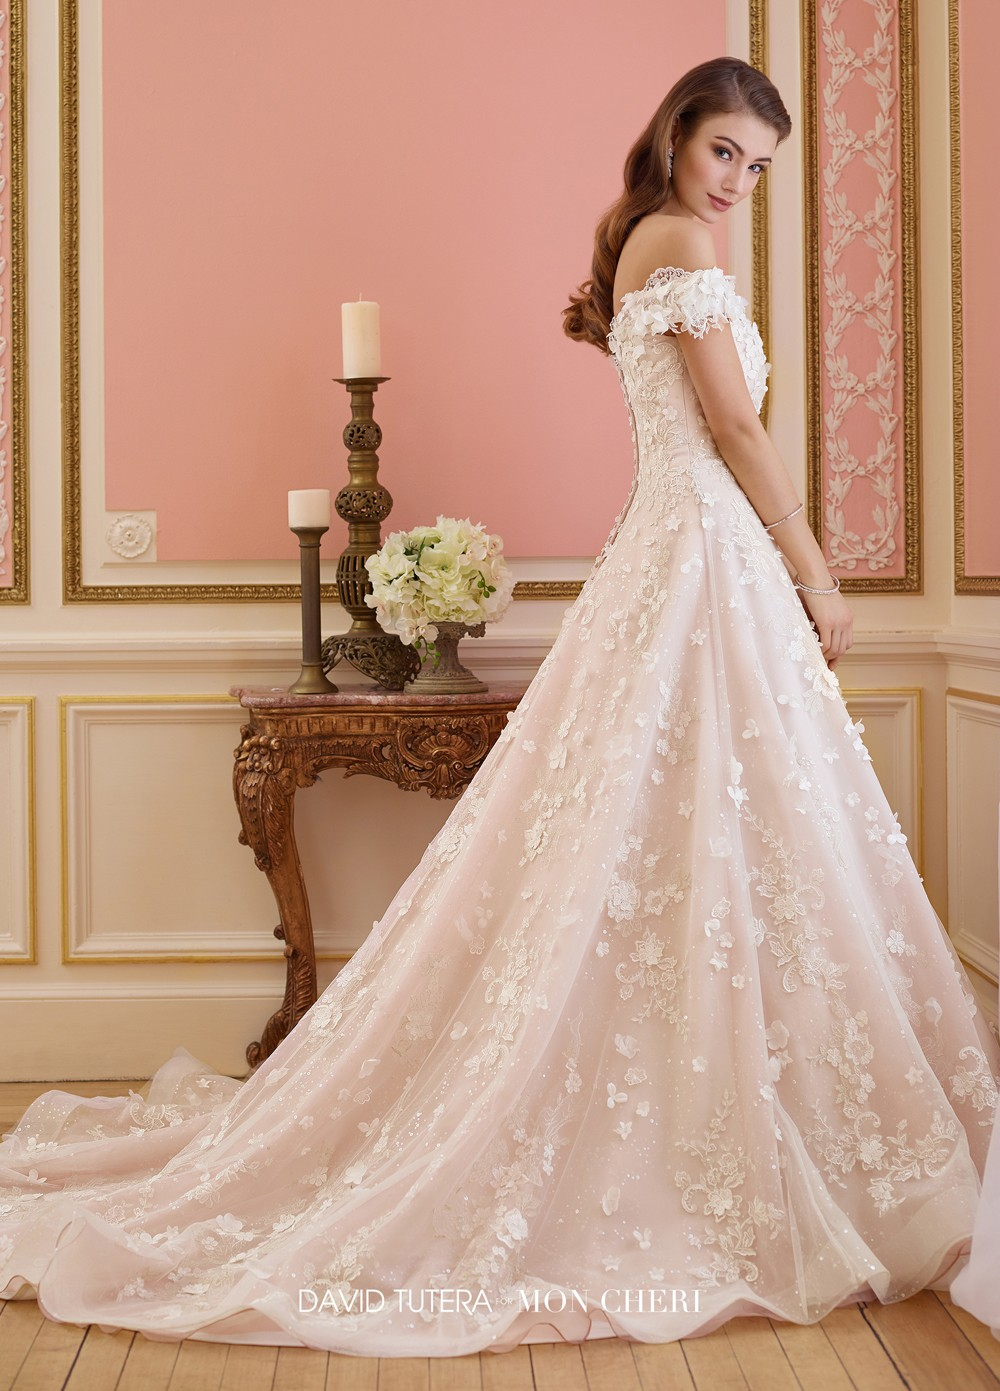 David Tutera Elnora Wedding Dress